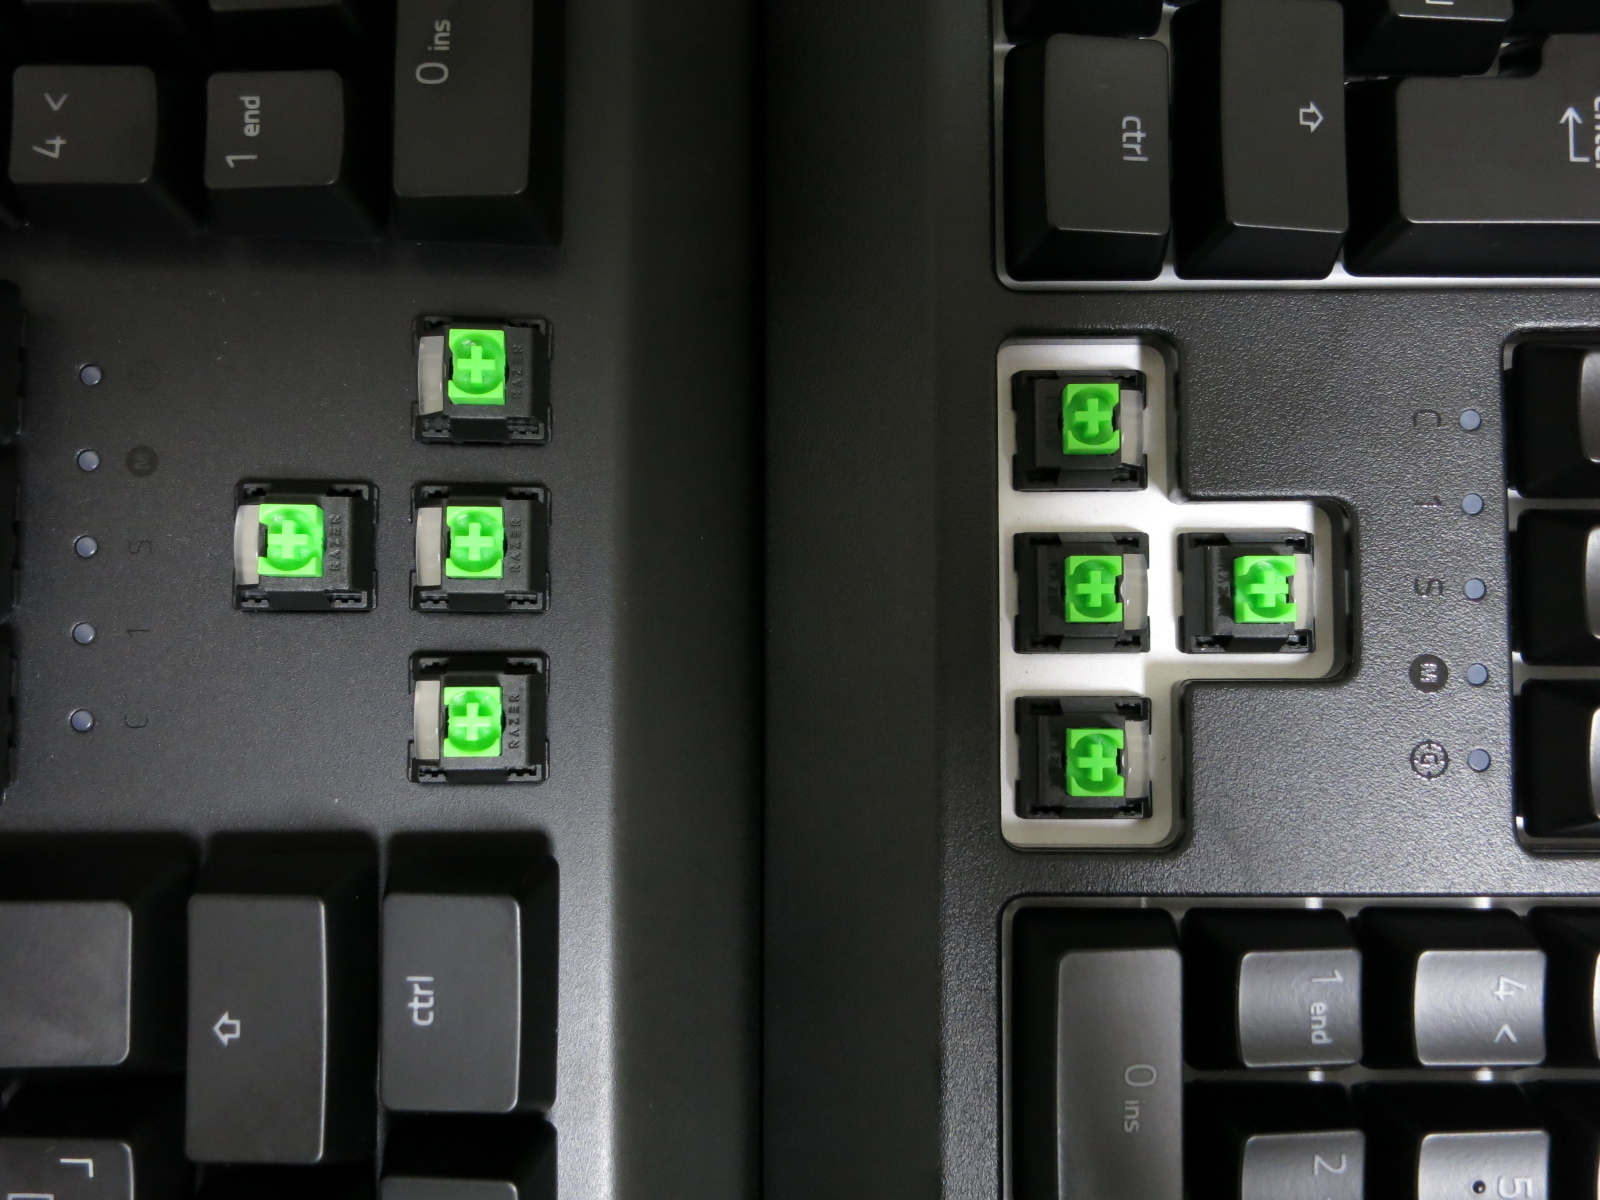 Razer_BlackWidow_2019vsElite_16.jpg